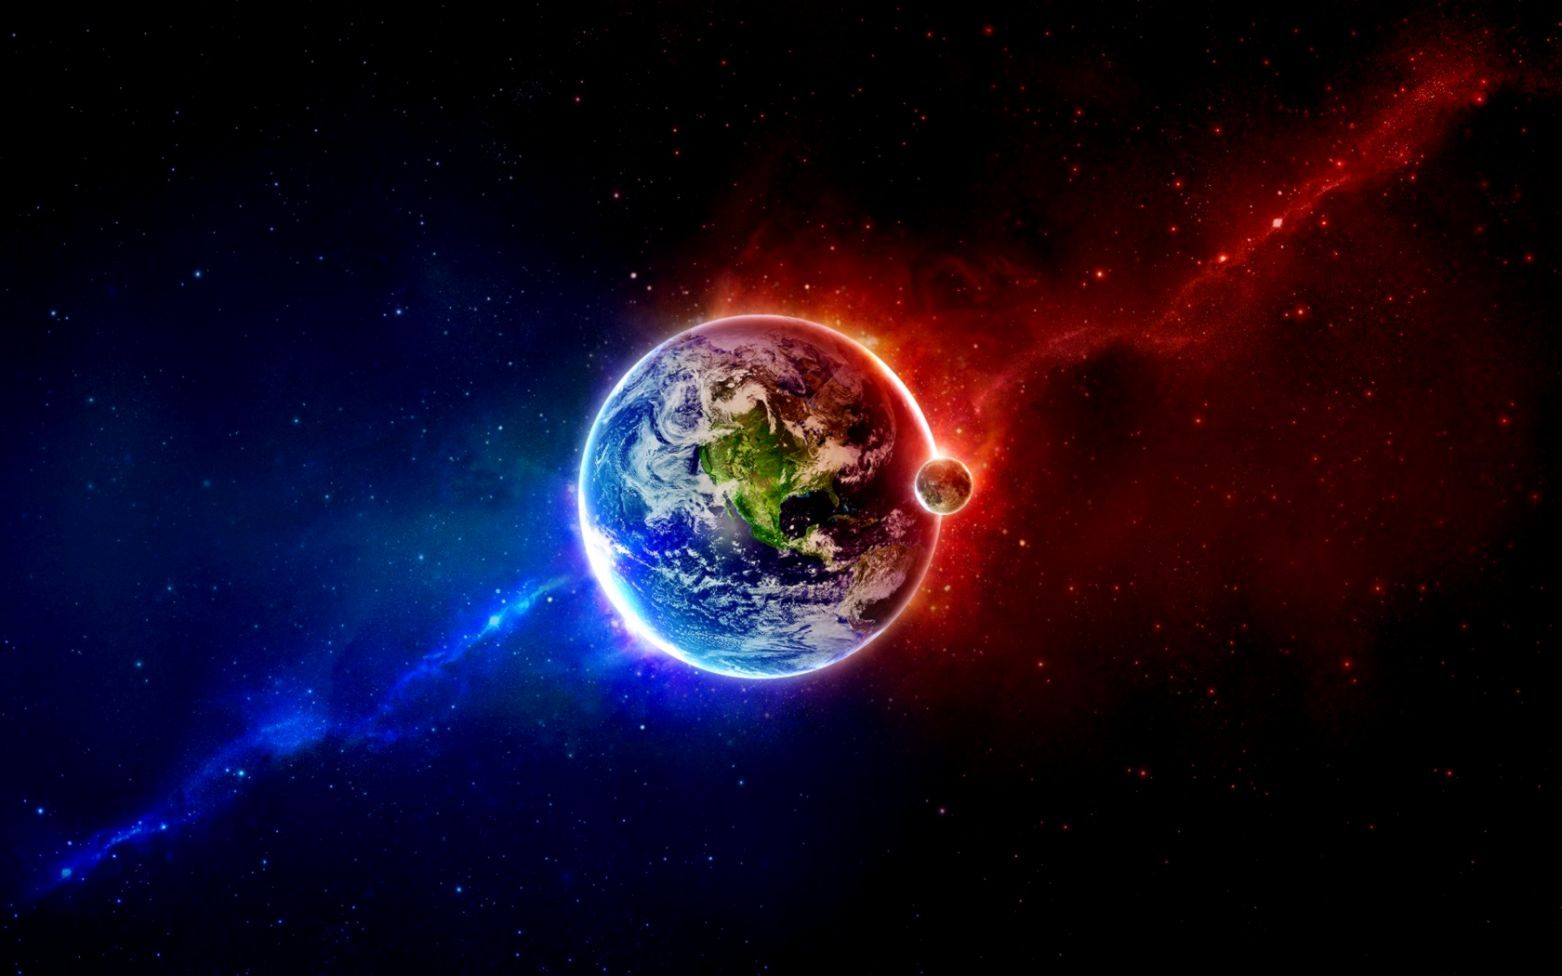 3d Space Background Wallpaper: World 3D Space Cool Wallpapers Hd